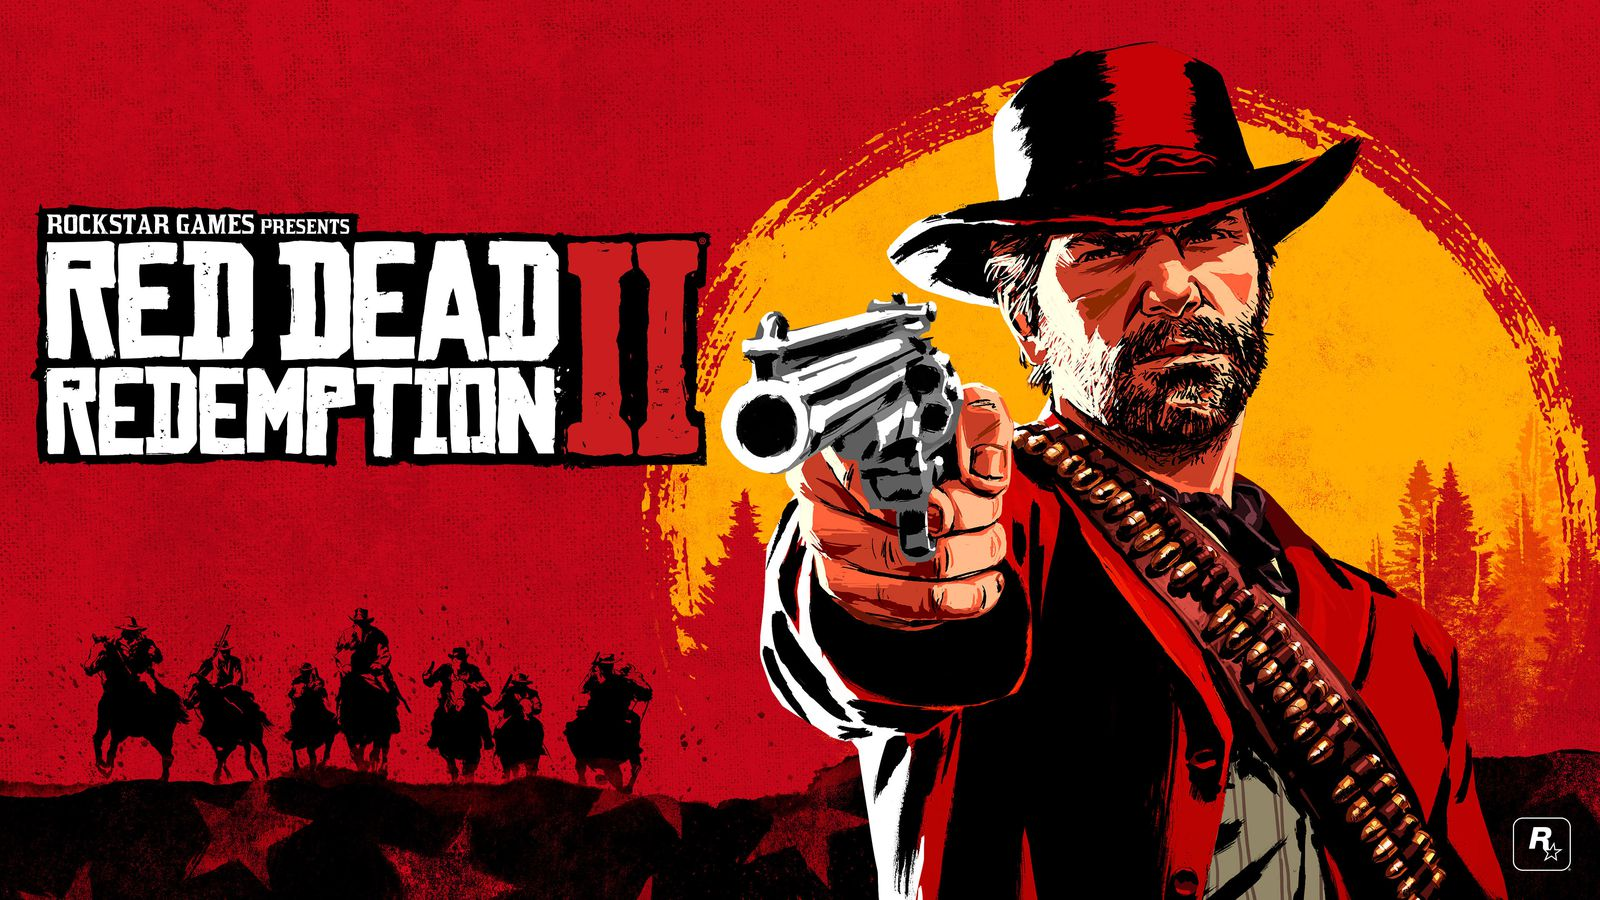 Rockstar Allegedly Working On New Games